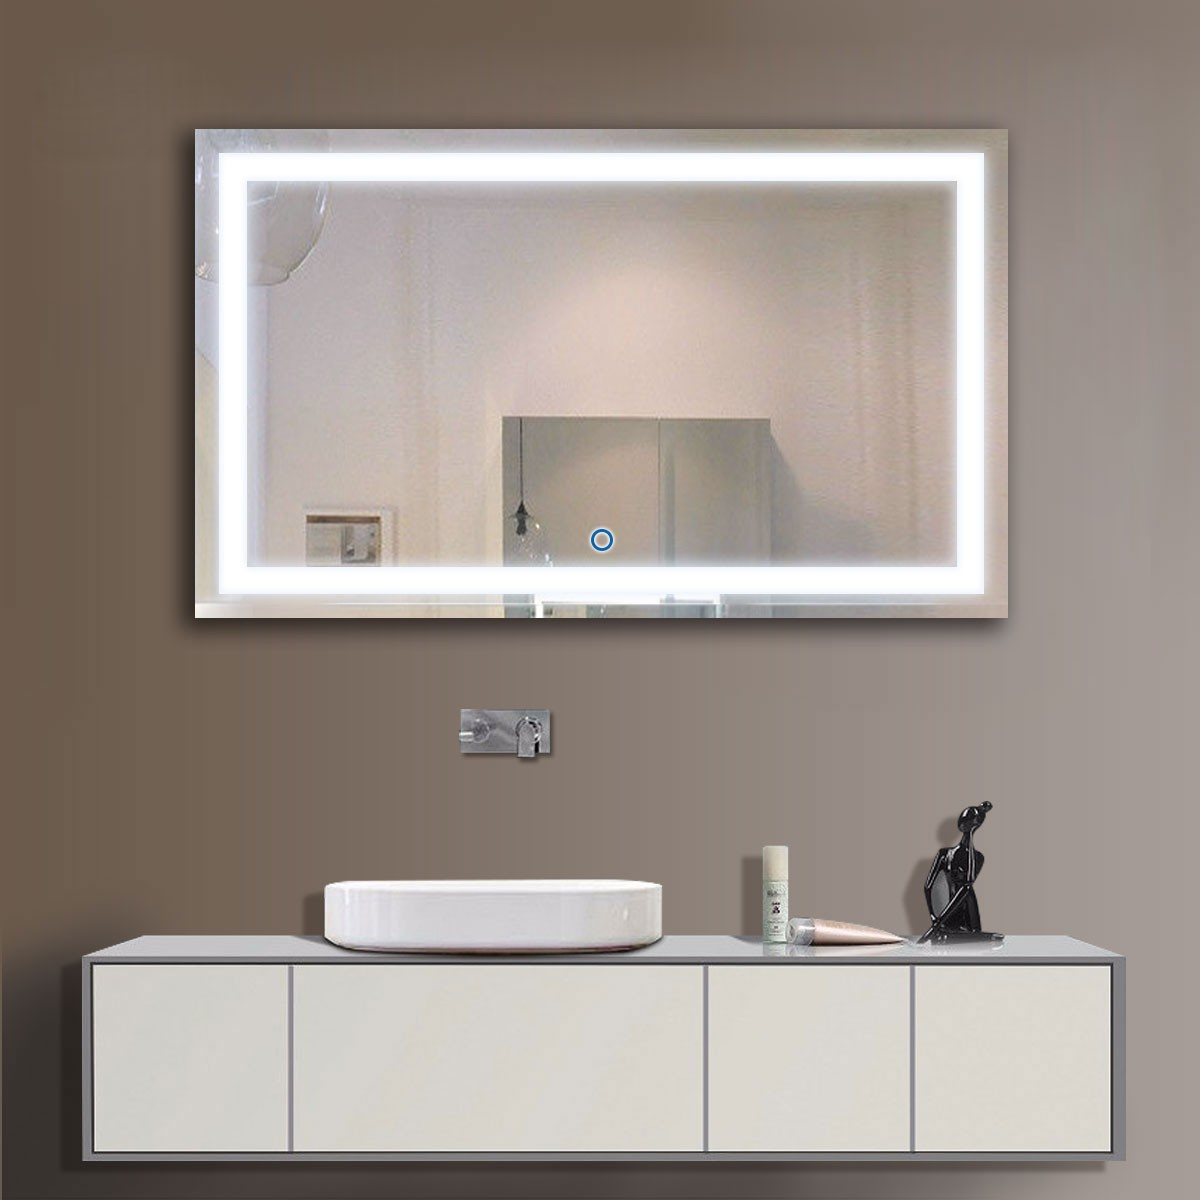 40 x 24 in horizontal led bathroom silvered mirror with touch button dk od ck010 g. Black Bedroom Furniture Sets. Home Design Ideas